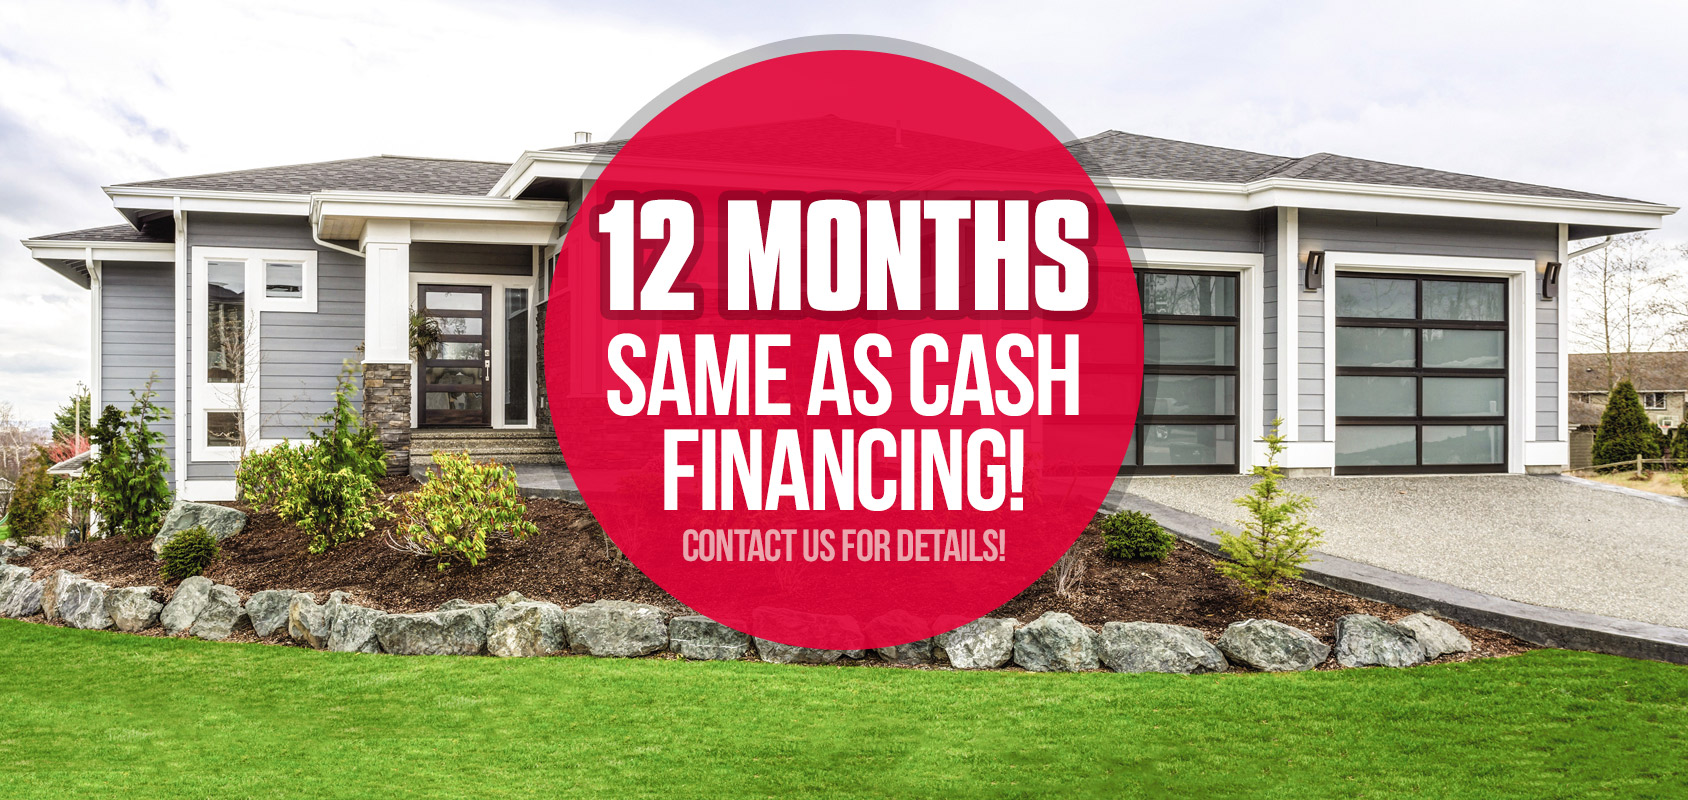 12 Months Same as Cash Financing